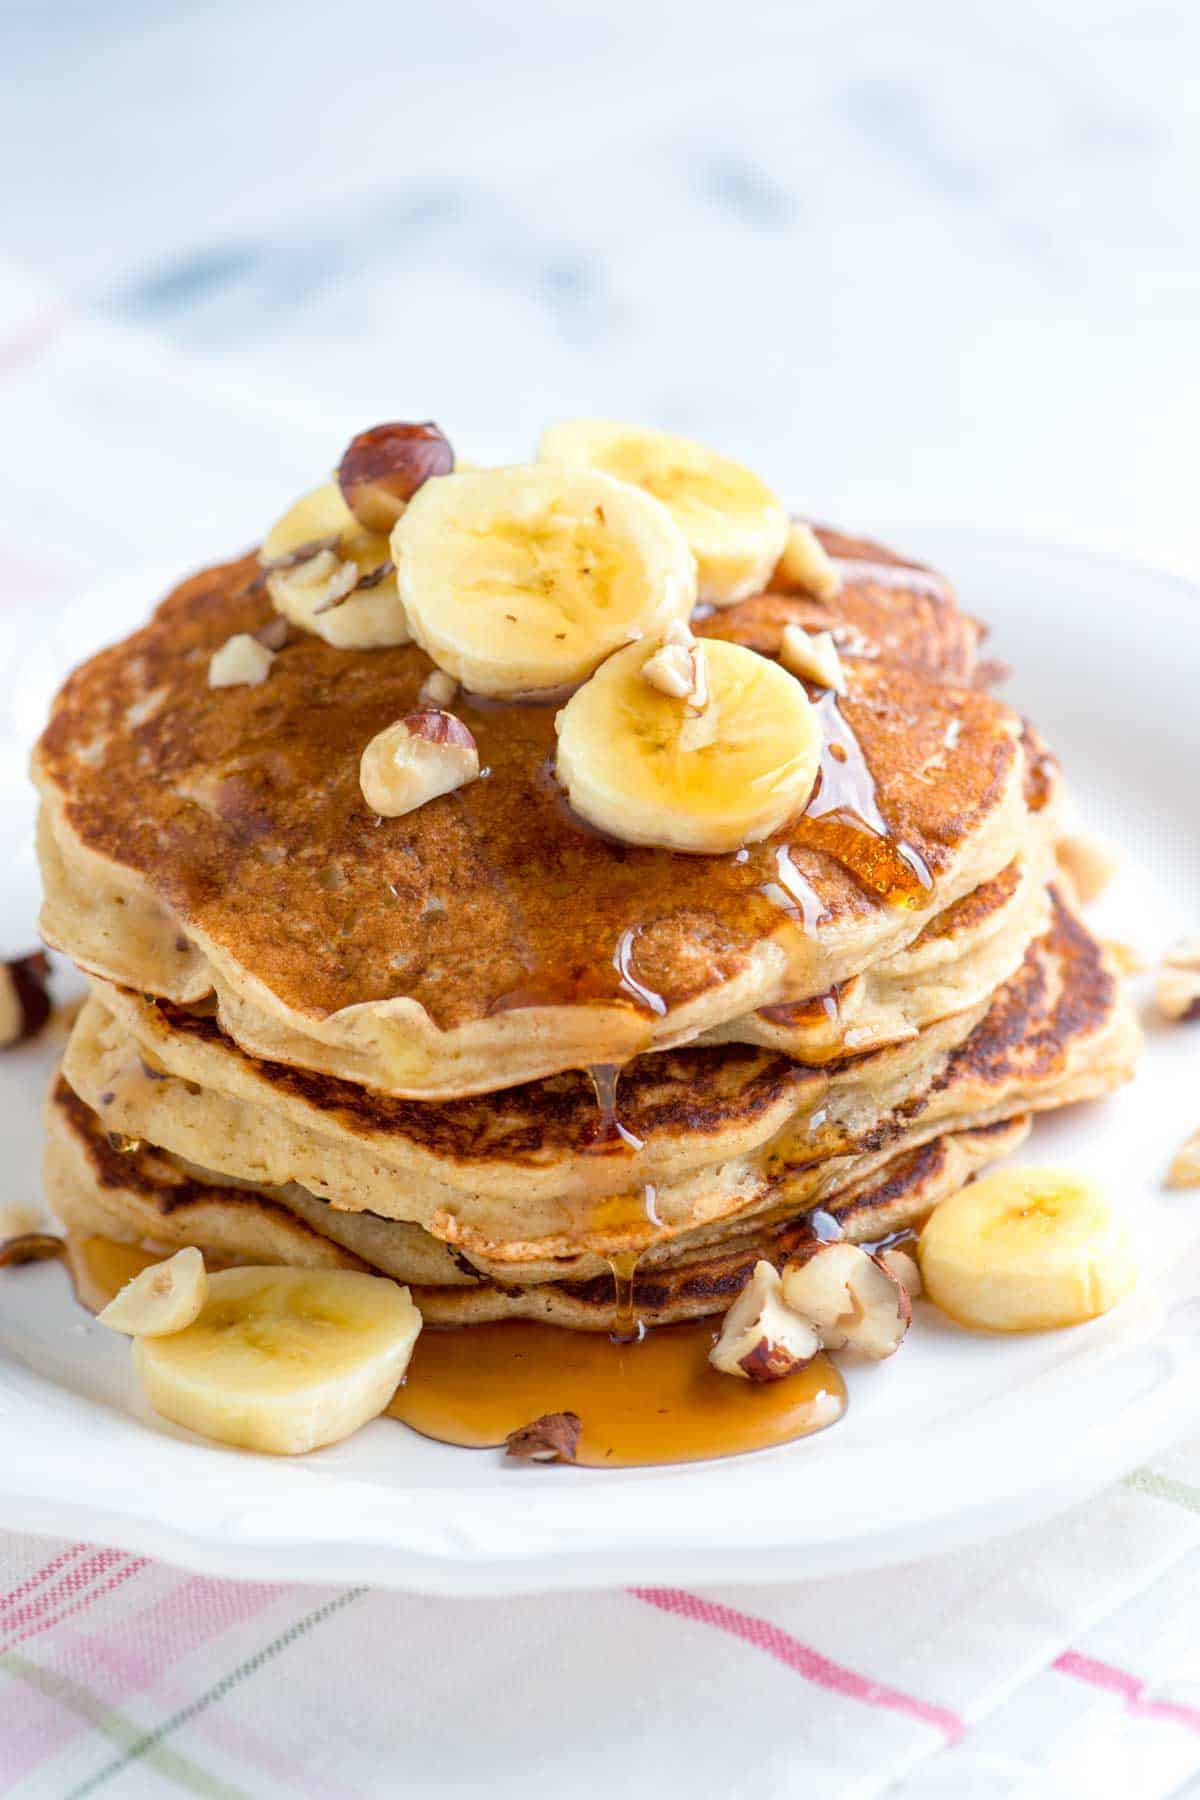 Perfect banana pancakes recipe our easy banana pancakes with buttermilk and warm spices takes less than 30 minutes and make ccuart Gallery